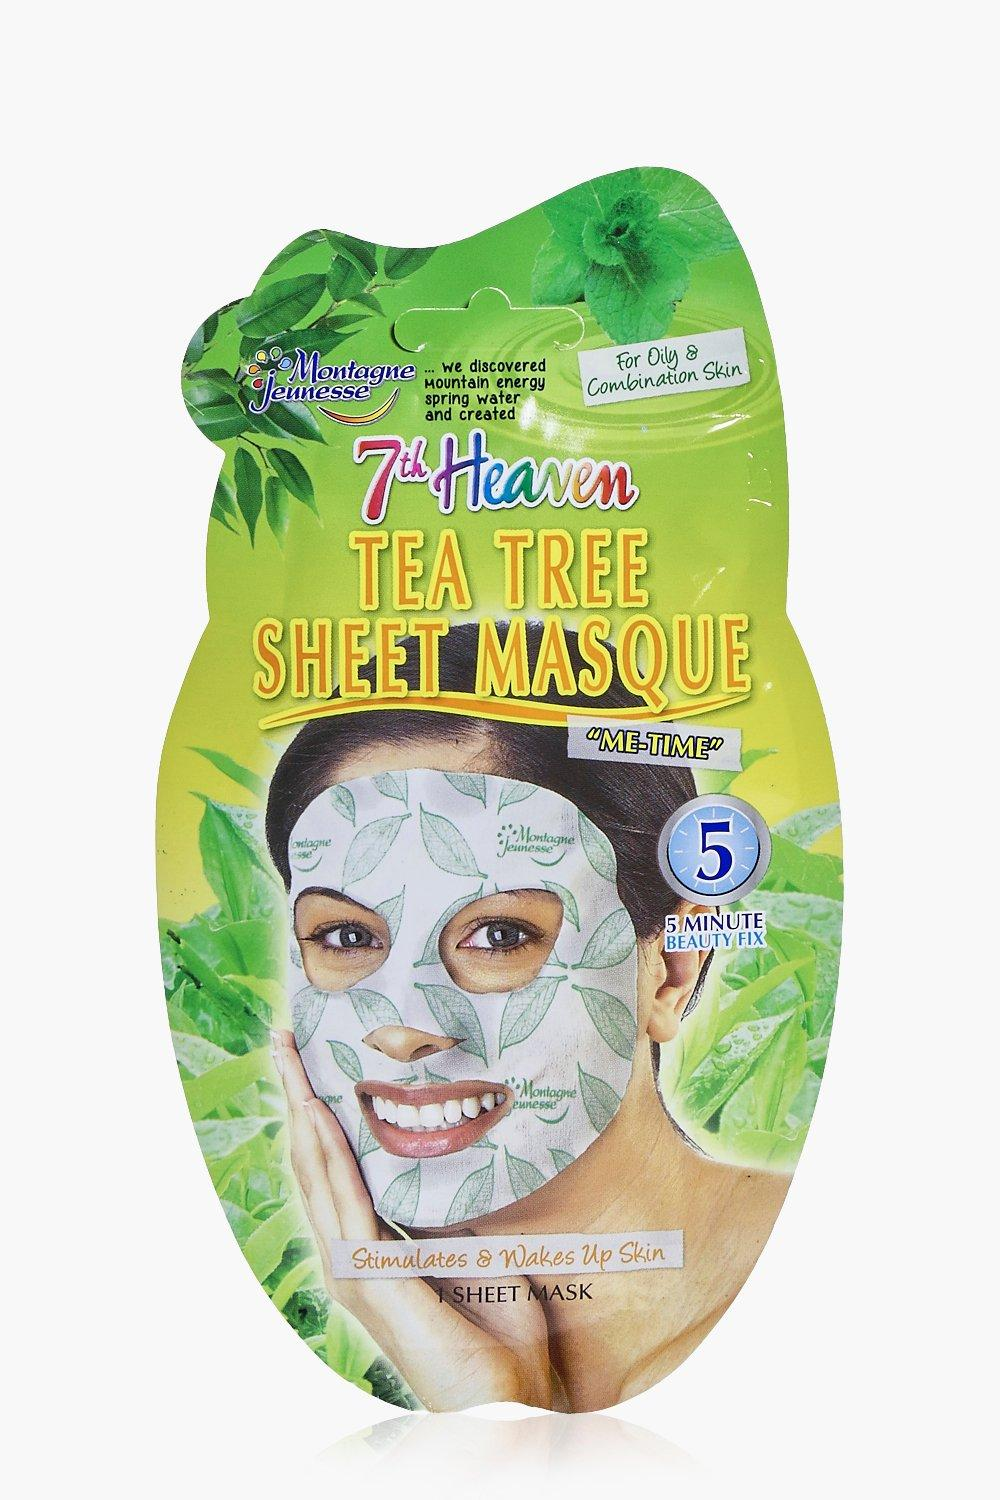 Tea Tree Sheet Masque Face Mask